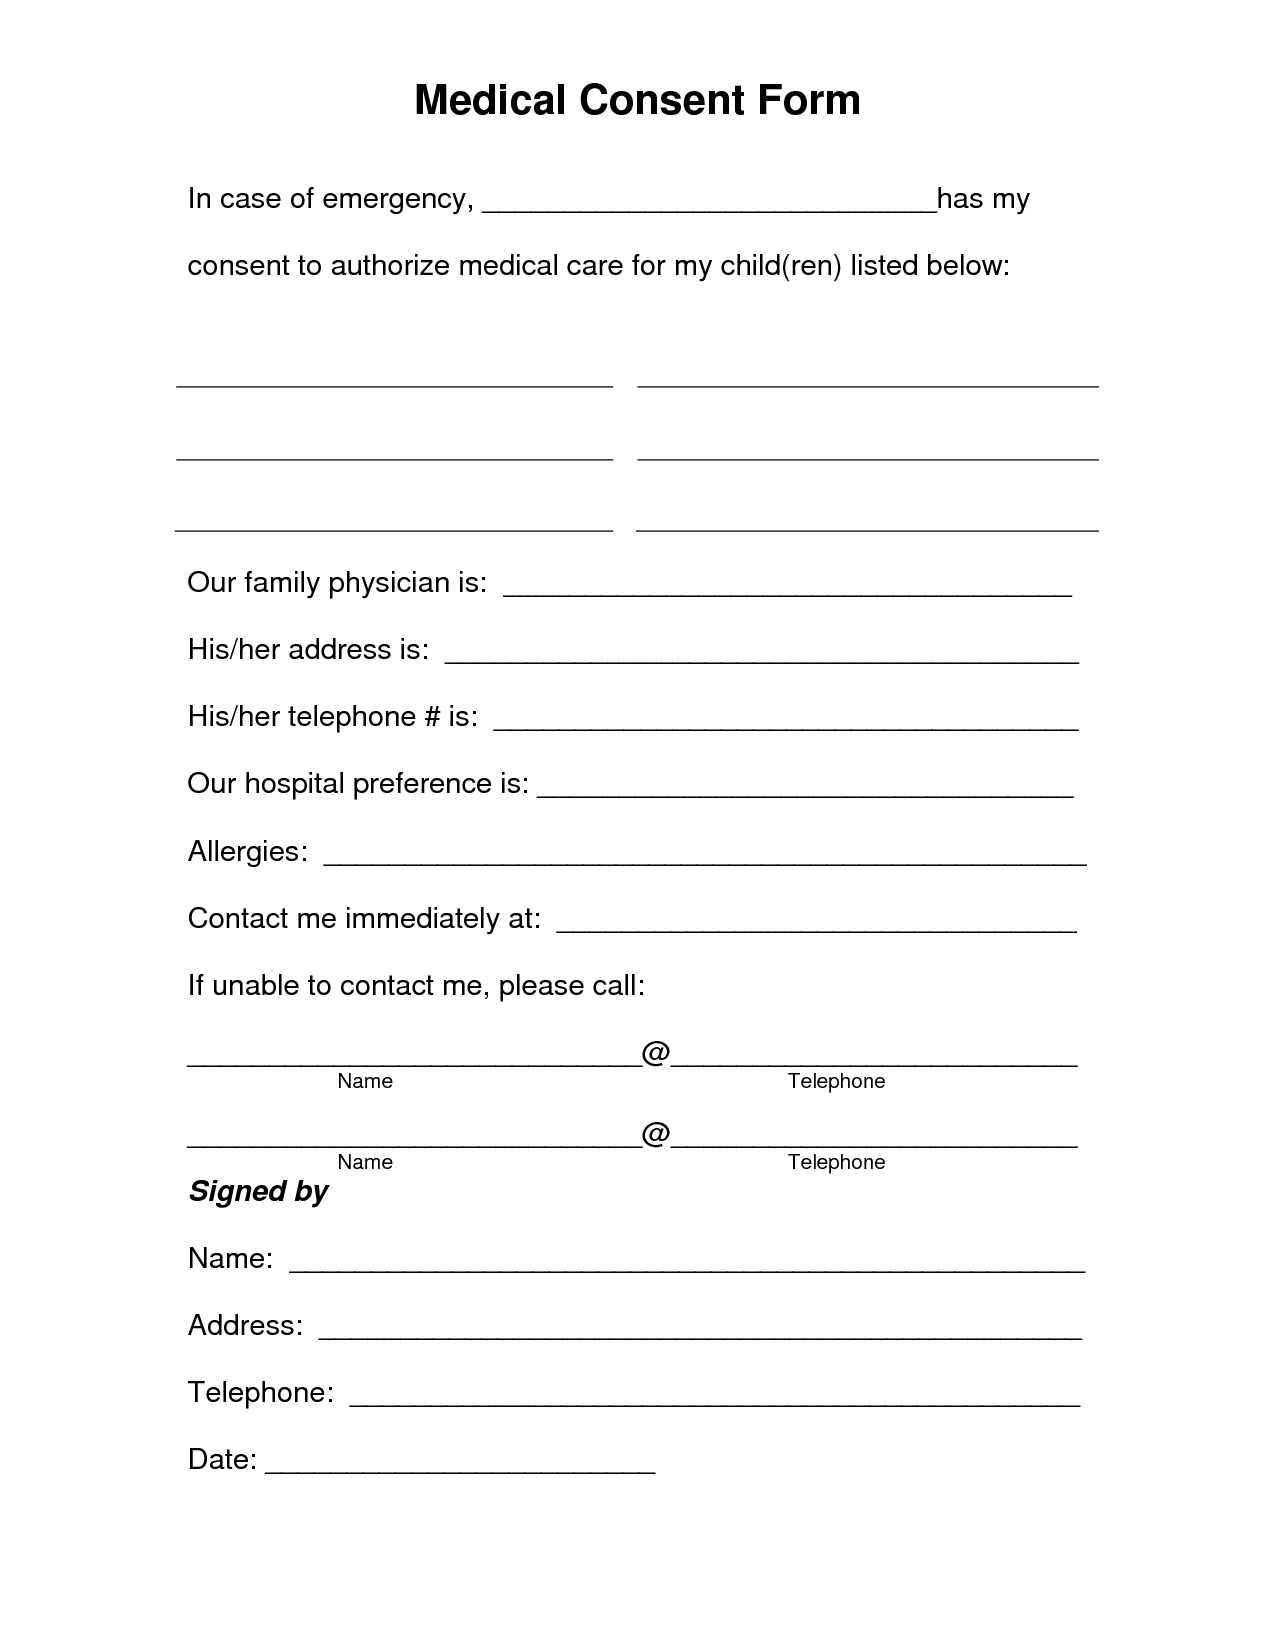 Free Printable Medical Consent Form | Free Medical Consent Form  Free Printable Doctor Forms